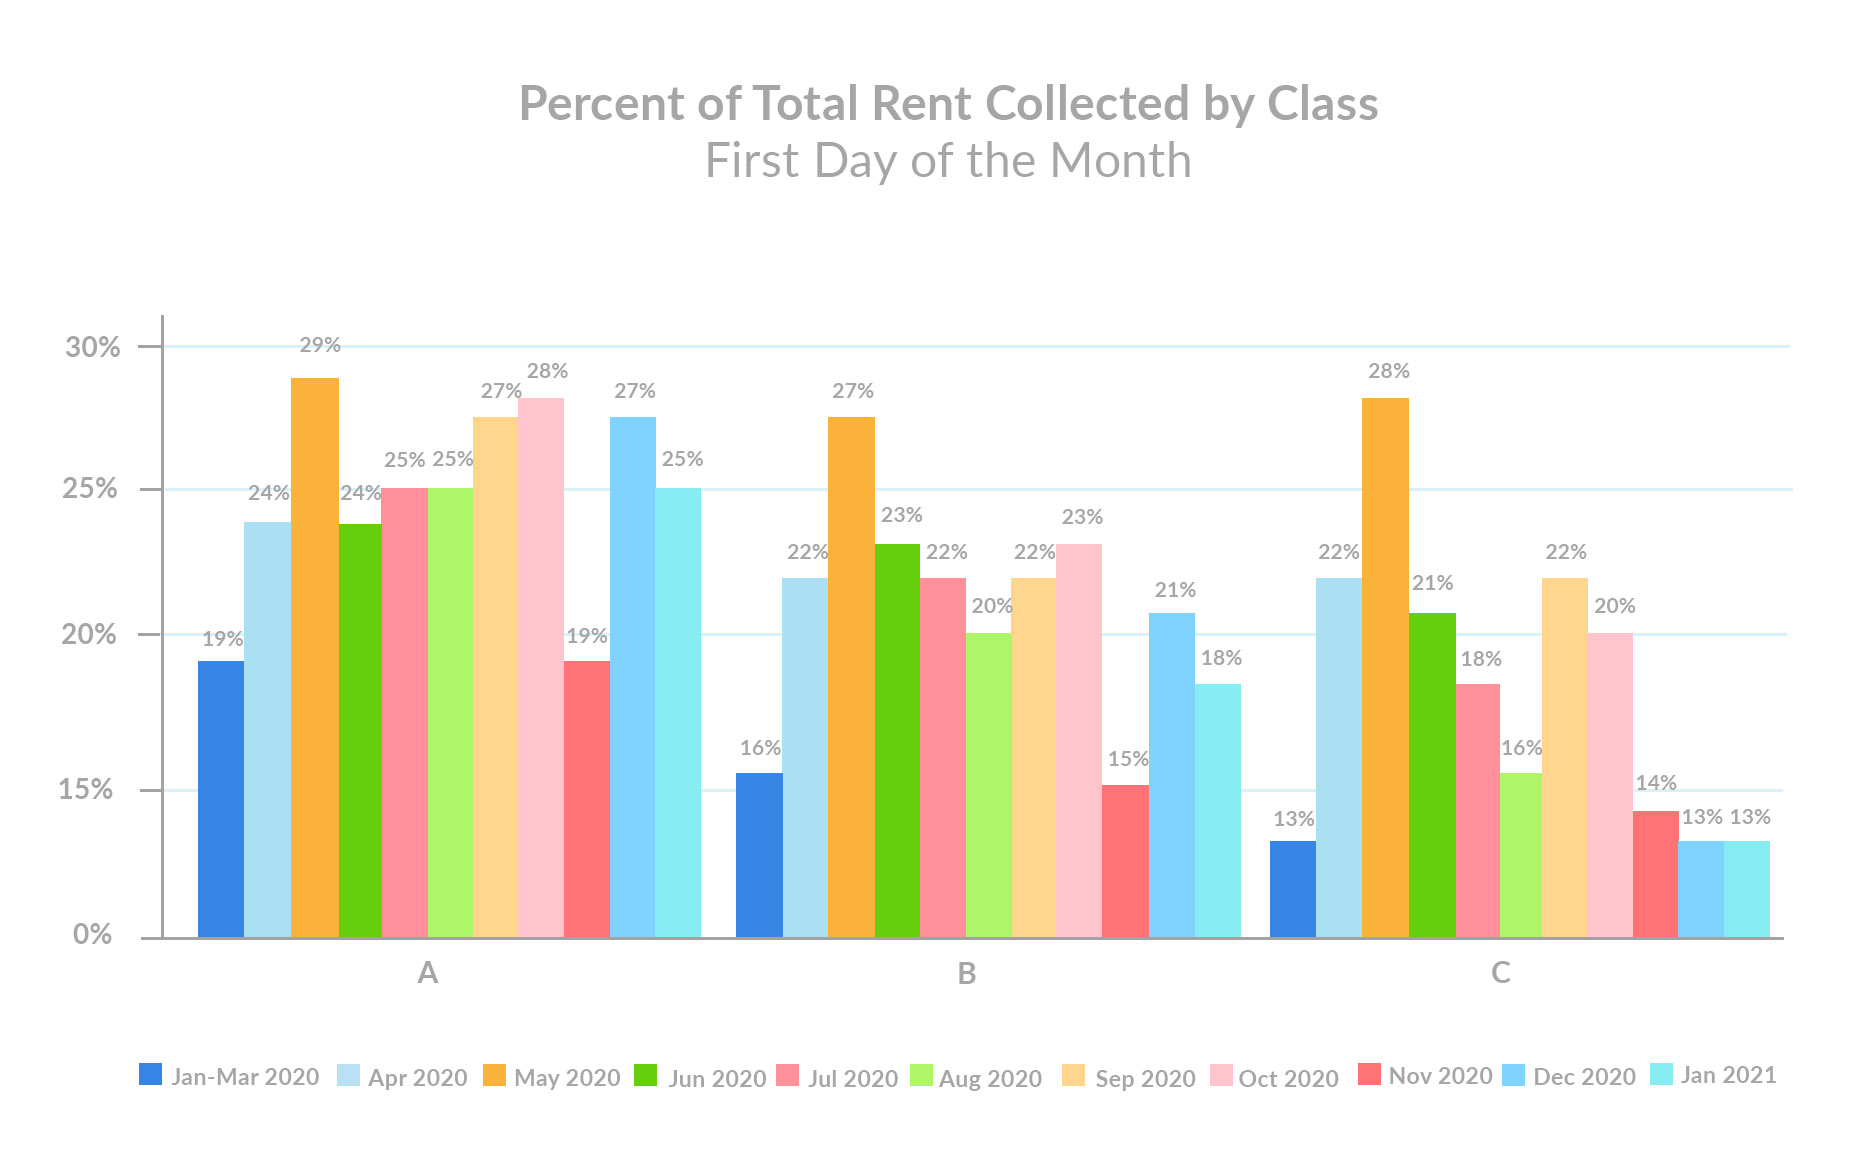 percent-of-total-rent-collected-by-class-january-1st-rent-payments